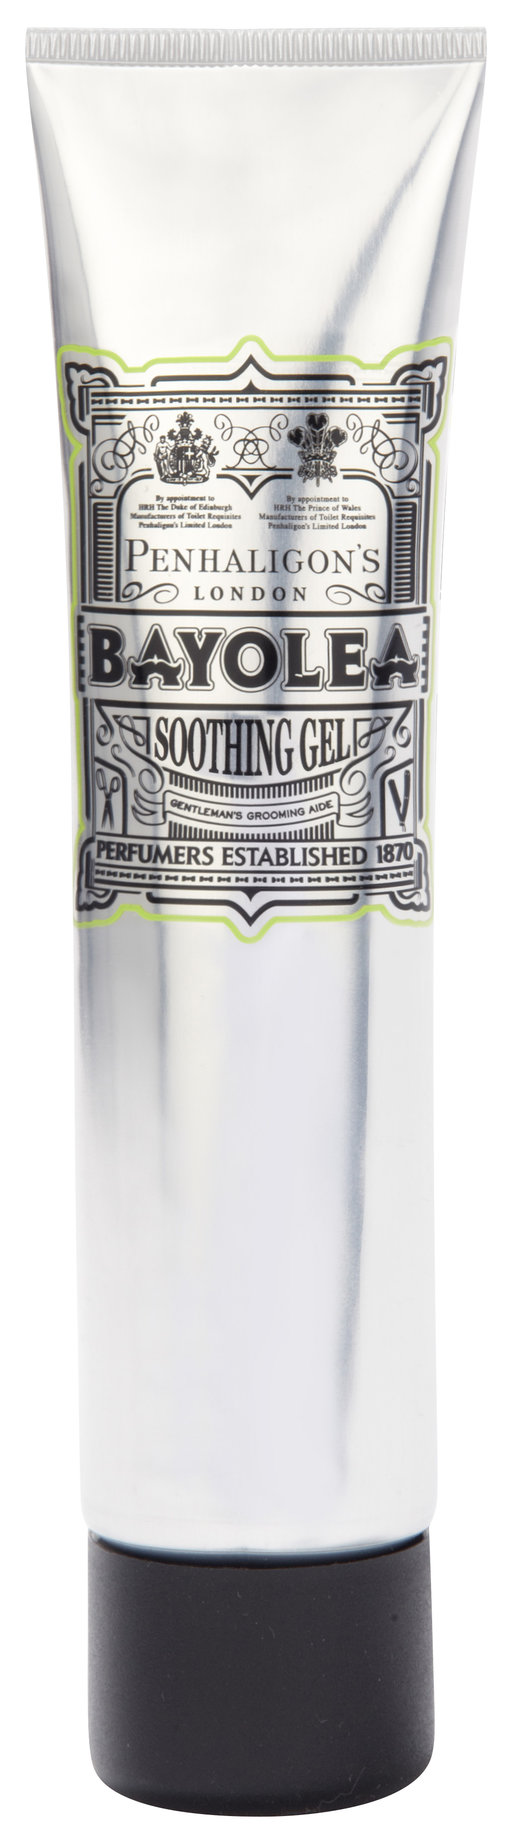 Penhaligon's Bayolea Soothing Gel